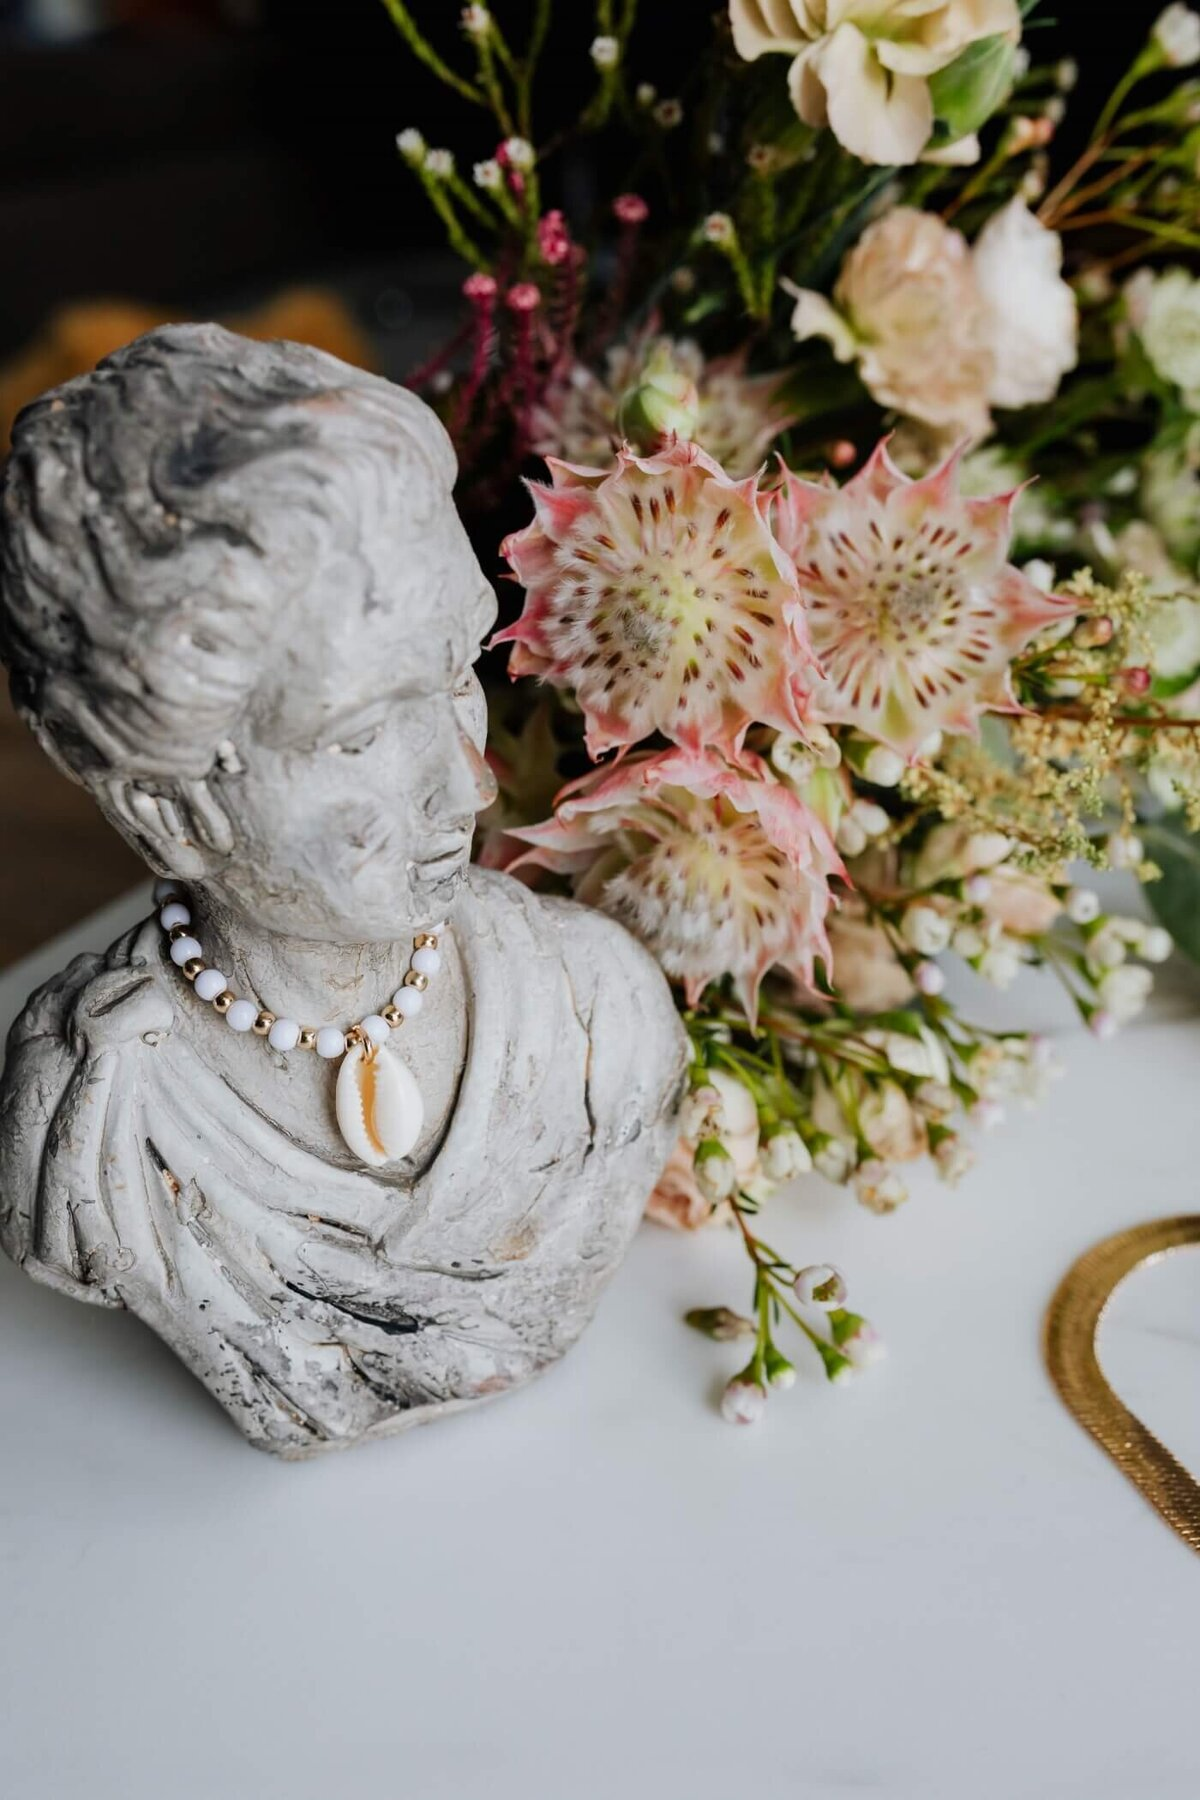 Grey Stone Bust of Woman as a display for Necklace with Bouquet